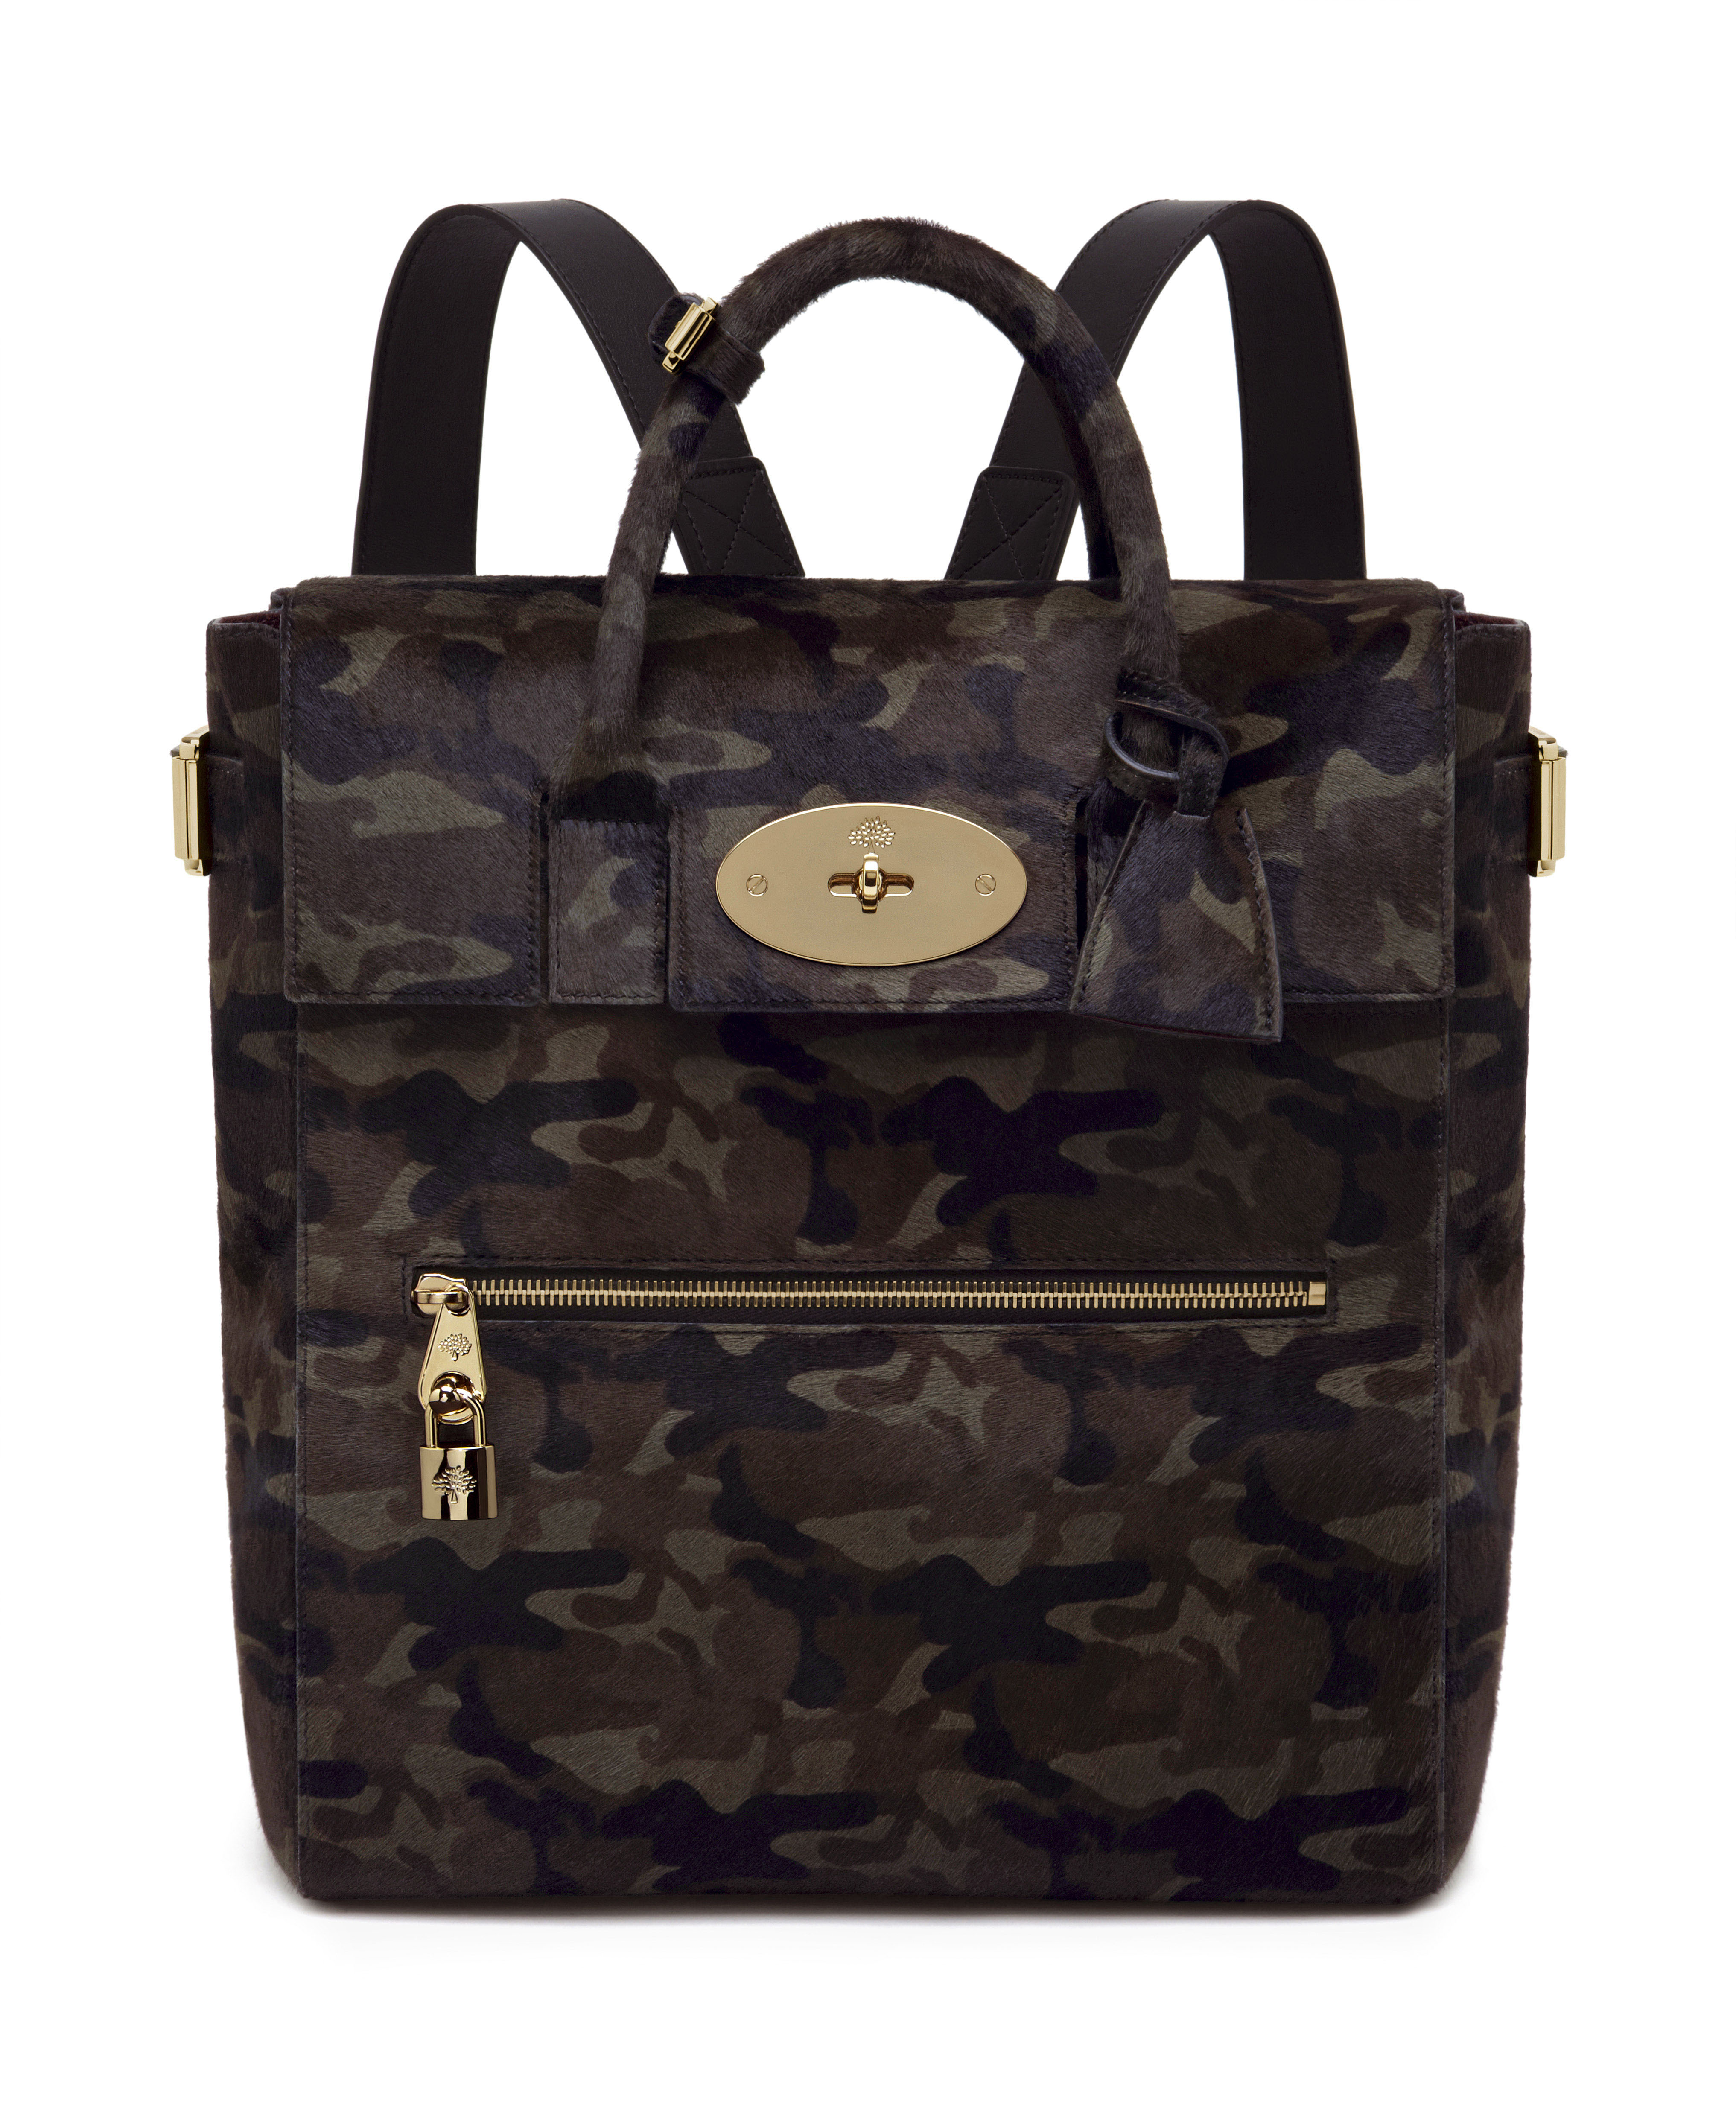 Large Cara Delevingne Bag in Khaki Camo Haircalf